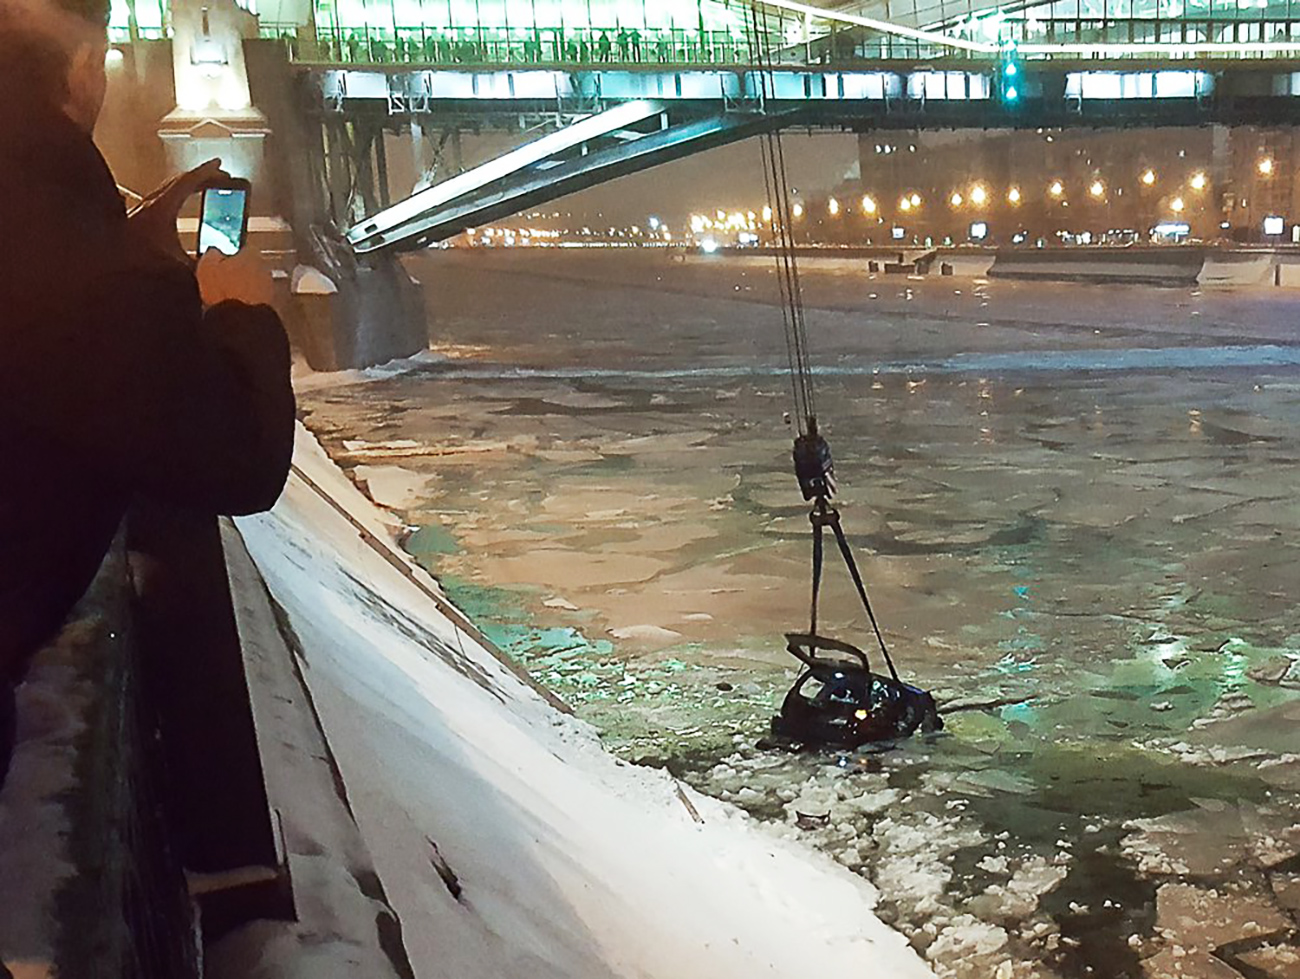 A traffic officer on the scene, 34-year-old Captain Alexei Konyaev, did not wait for rescuers to arrive, and instead jumped into the icy water and pulled the young lady out of the car to safety. Source: Moskva Agency